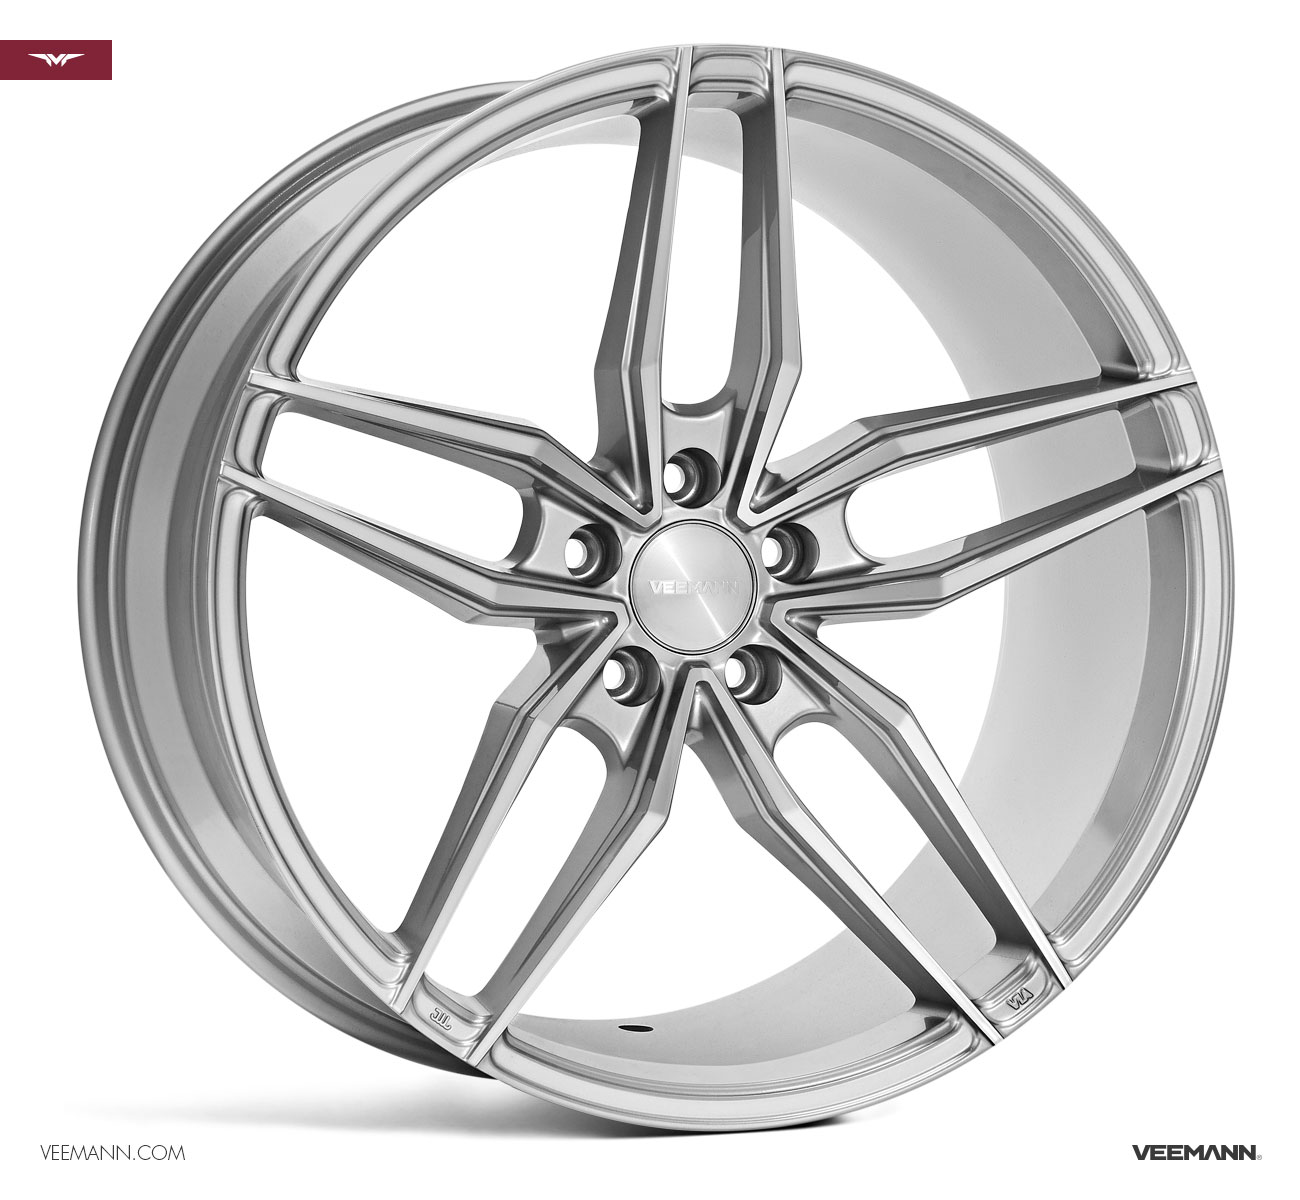 "NEW 19"" VEEMANN V-FS37 ALLOY WHEELS IN SILVER POL WITH WIDER 9.5"" REARS"